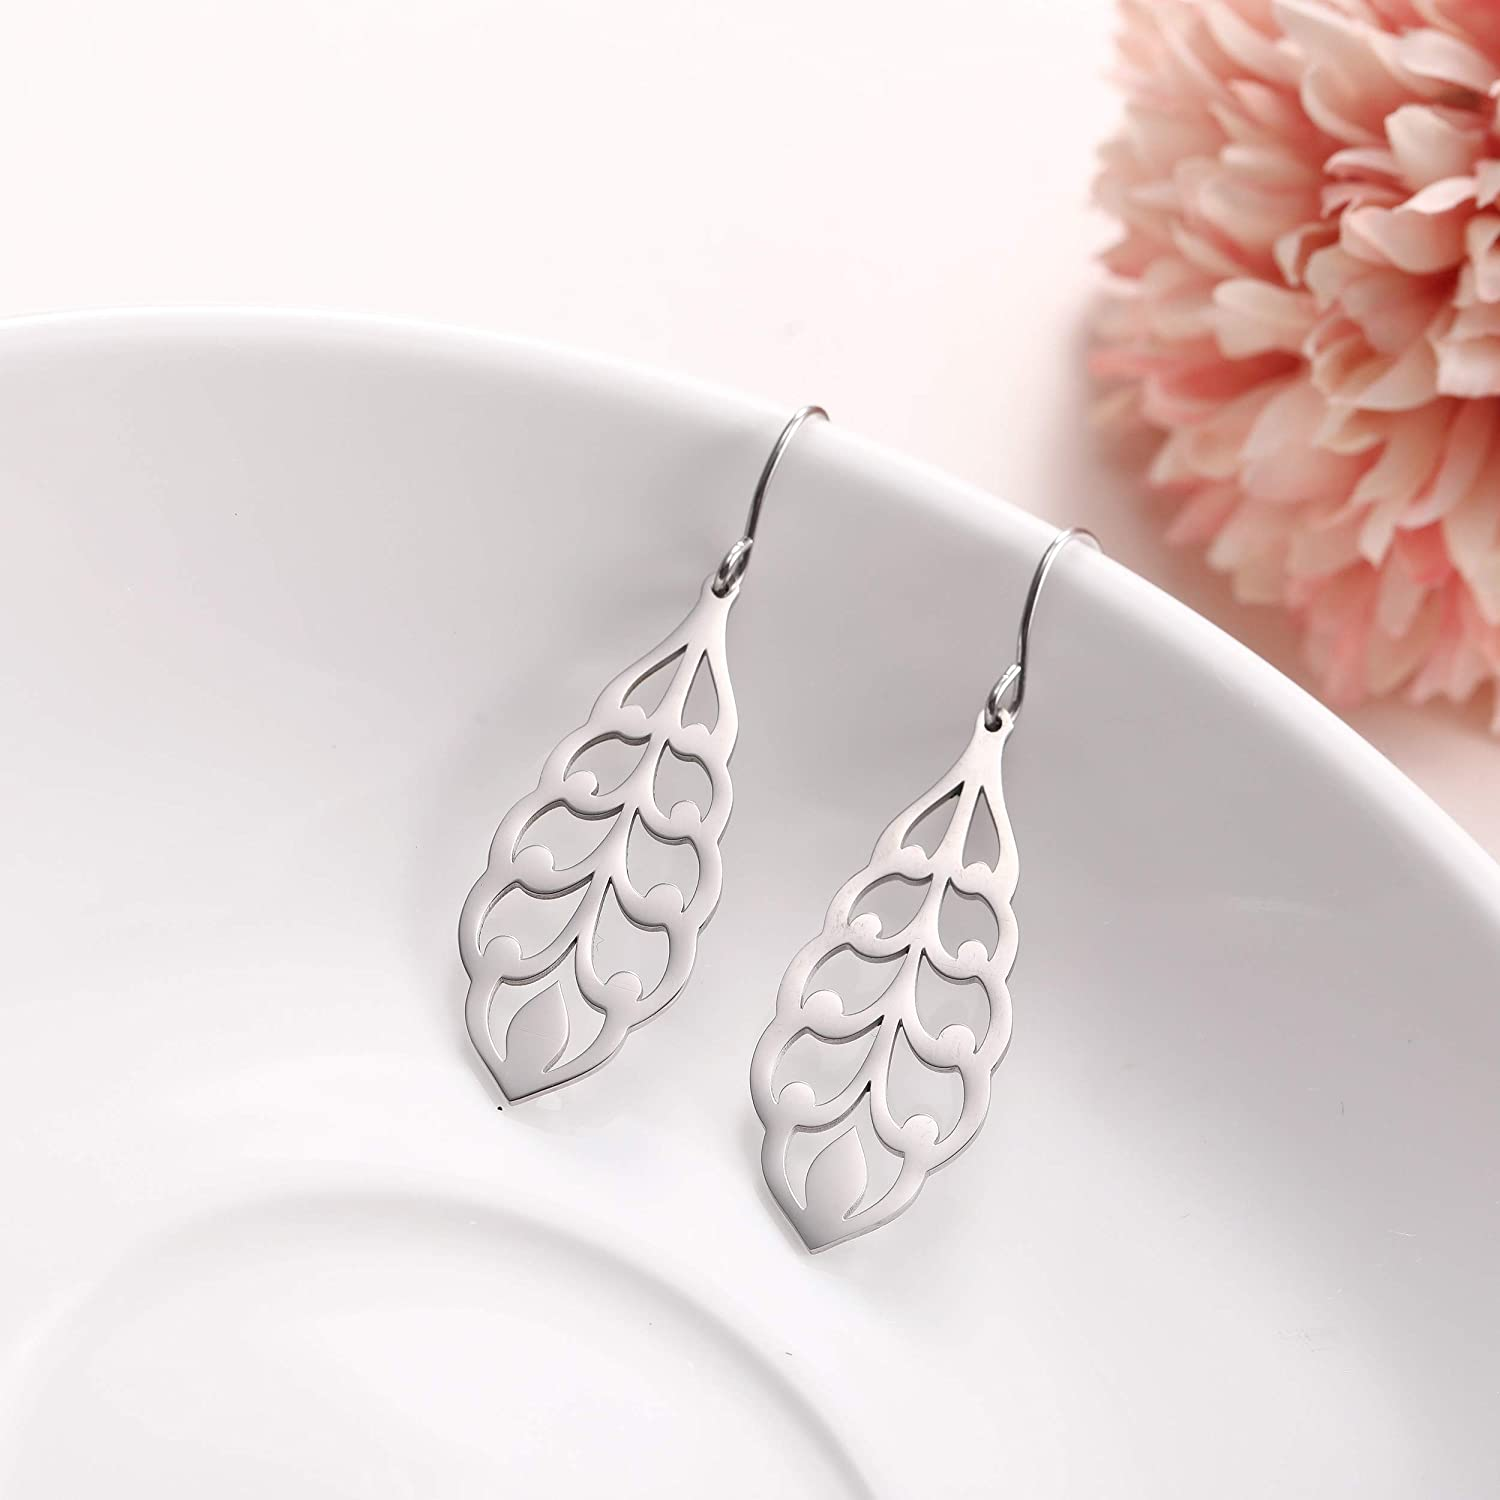 fishhook Filigree Earrings Delicate Leaf Flower Earrings Stainless Steel Dangle Drop Earrings for Women Mom Girls Sister Grandma Aunt Best Friend